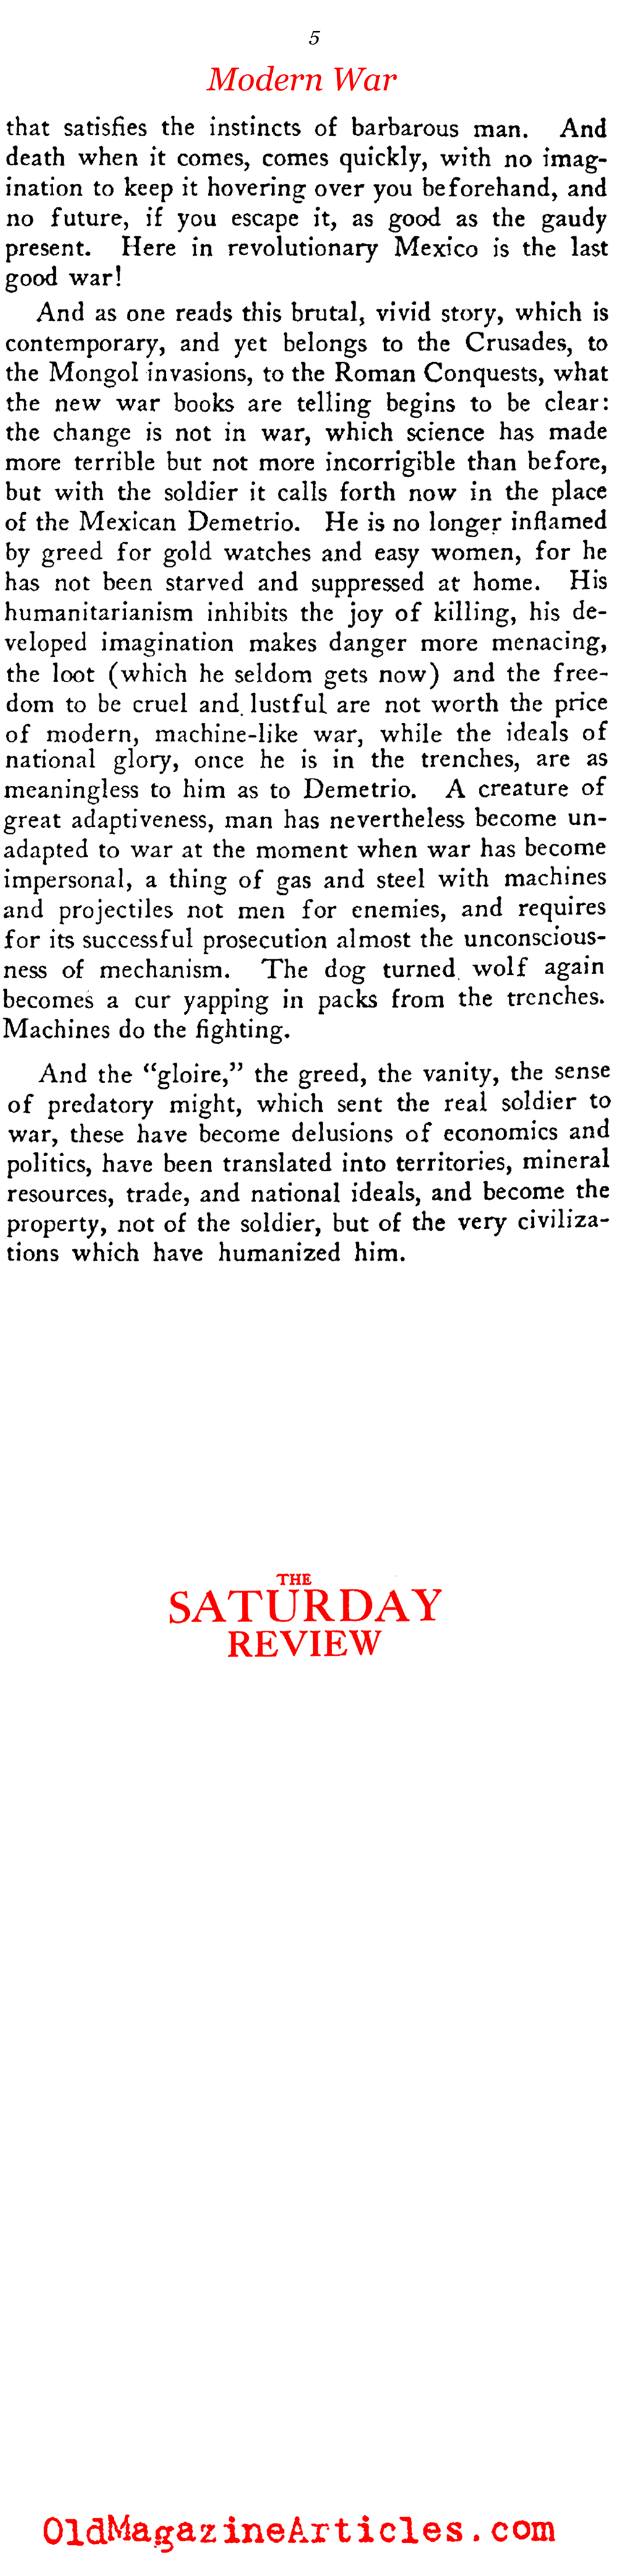 All Quiet on the Western Front (Saturday Review of Literature, 1929)